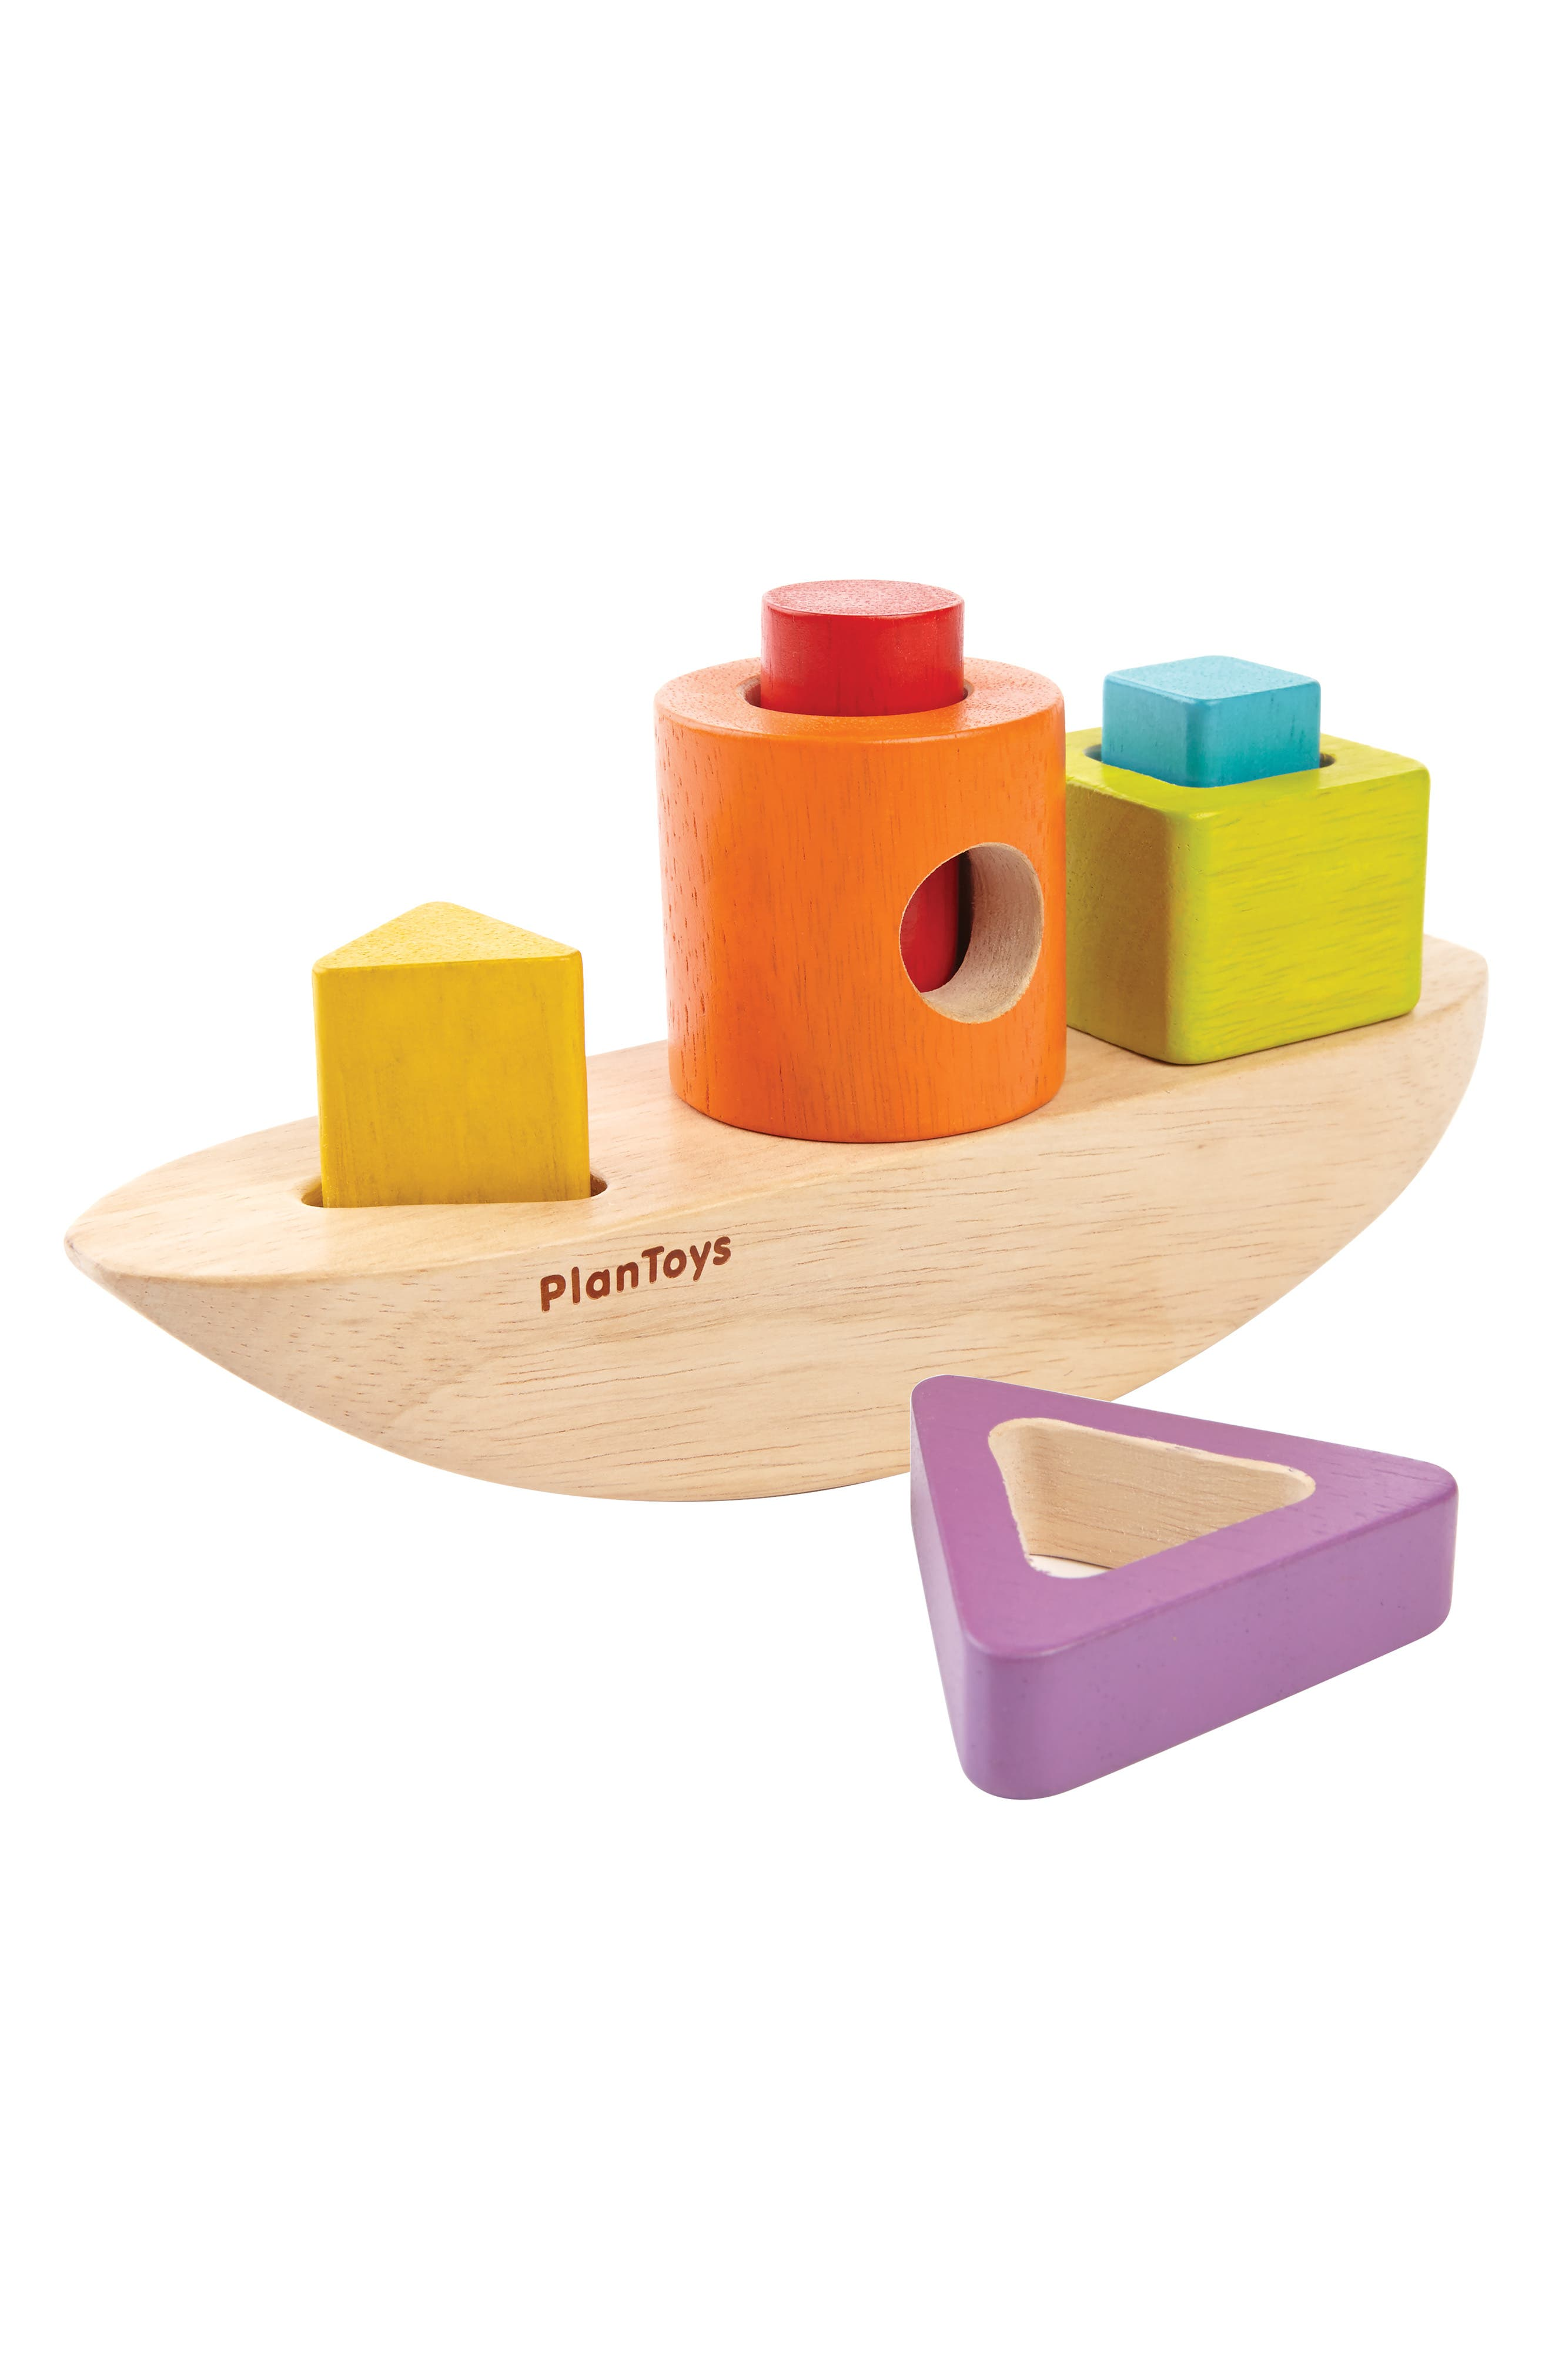 Toddler Plantoys Sorting Boat 7Piece Wooden Play Set